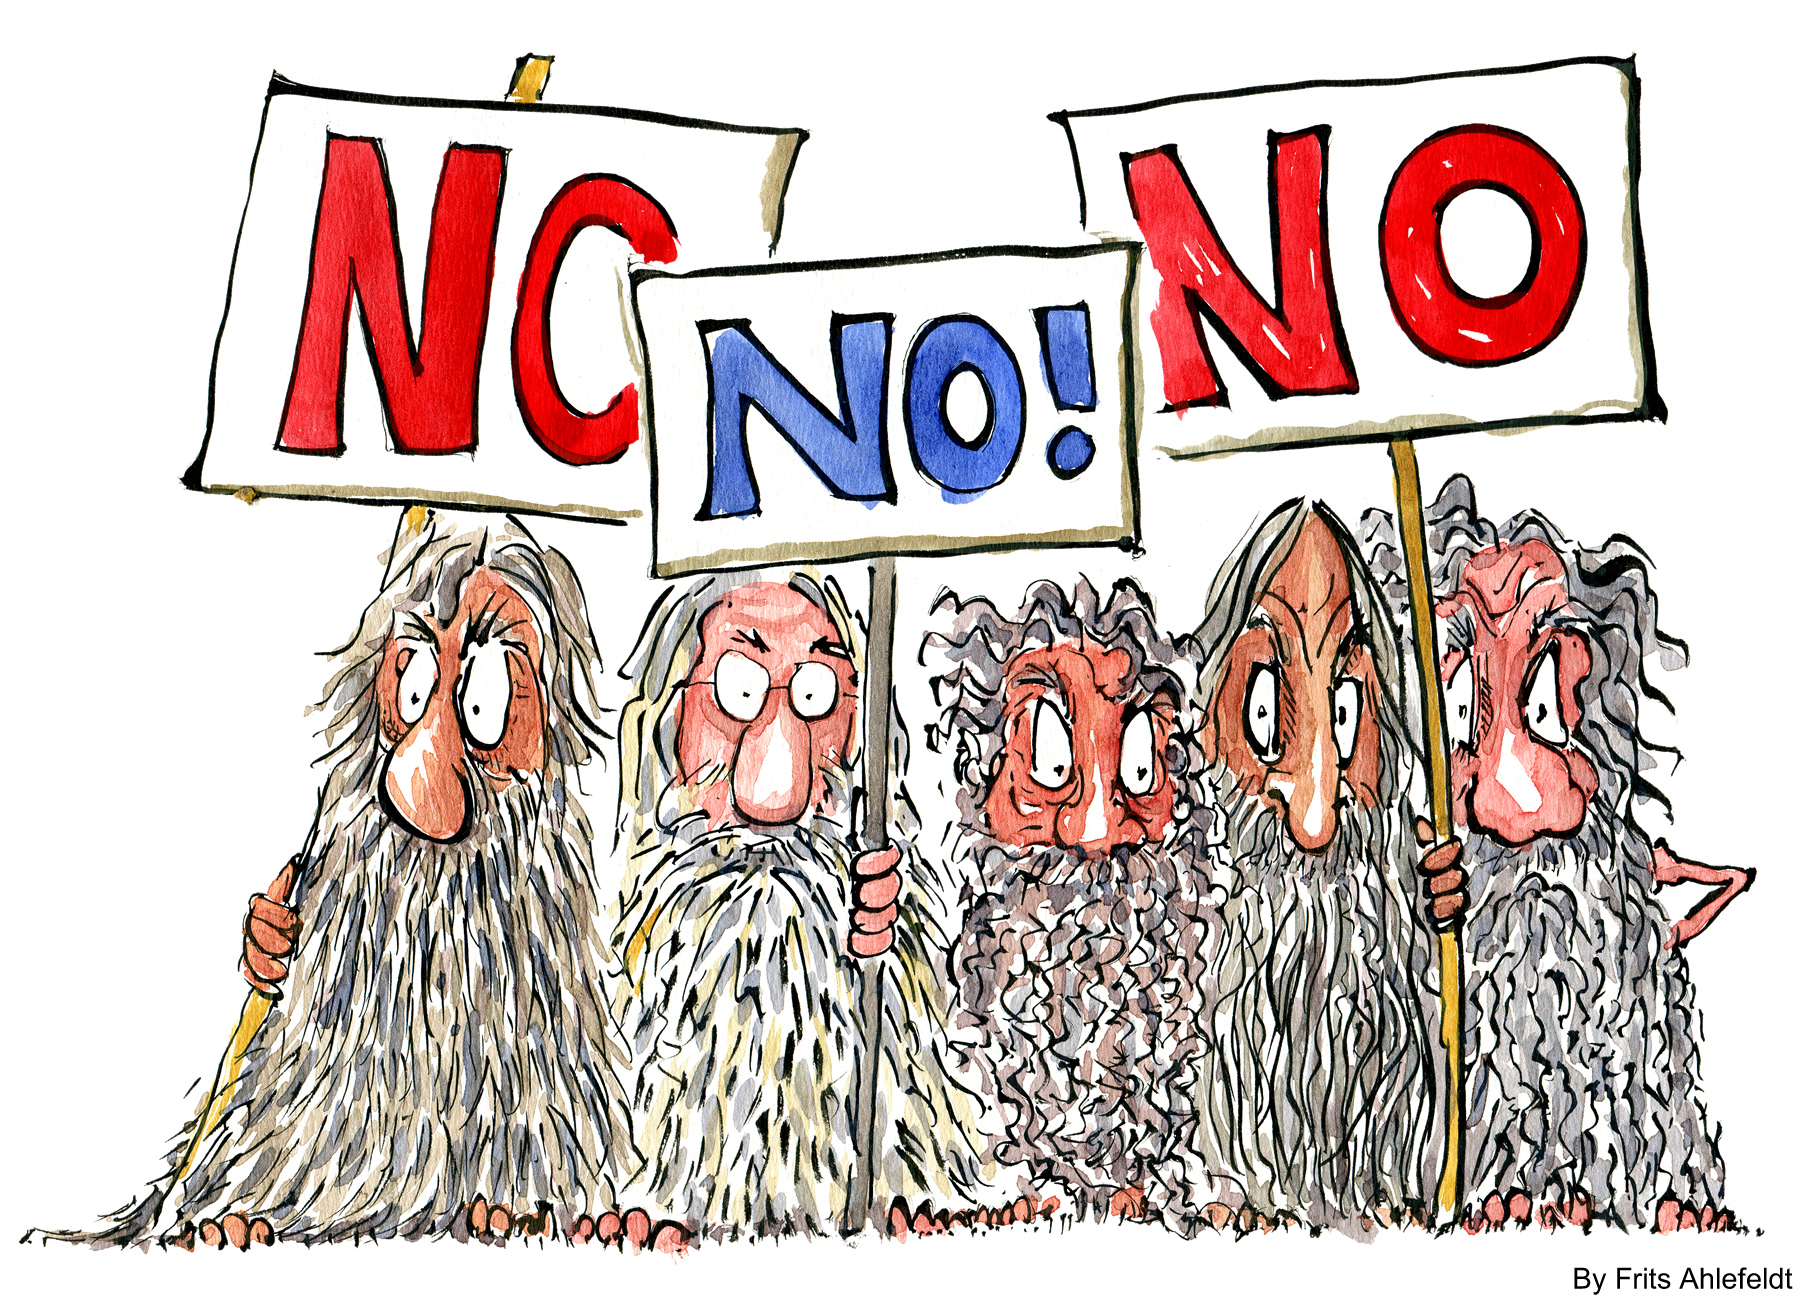 drawing of an group of men with signs saying NO